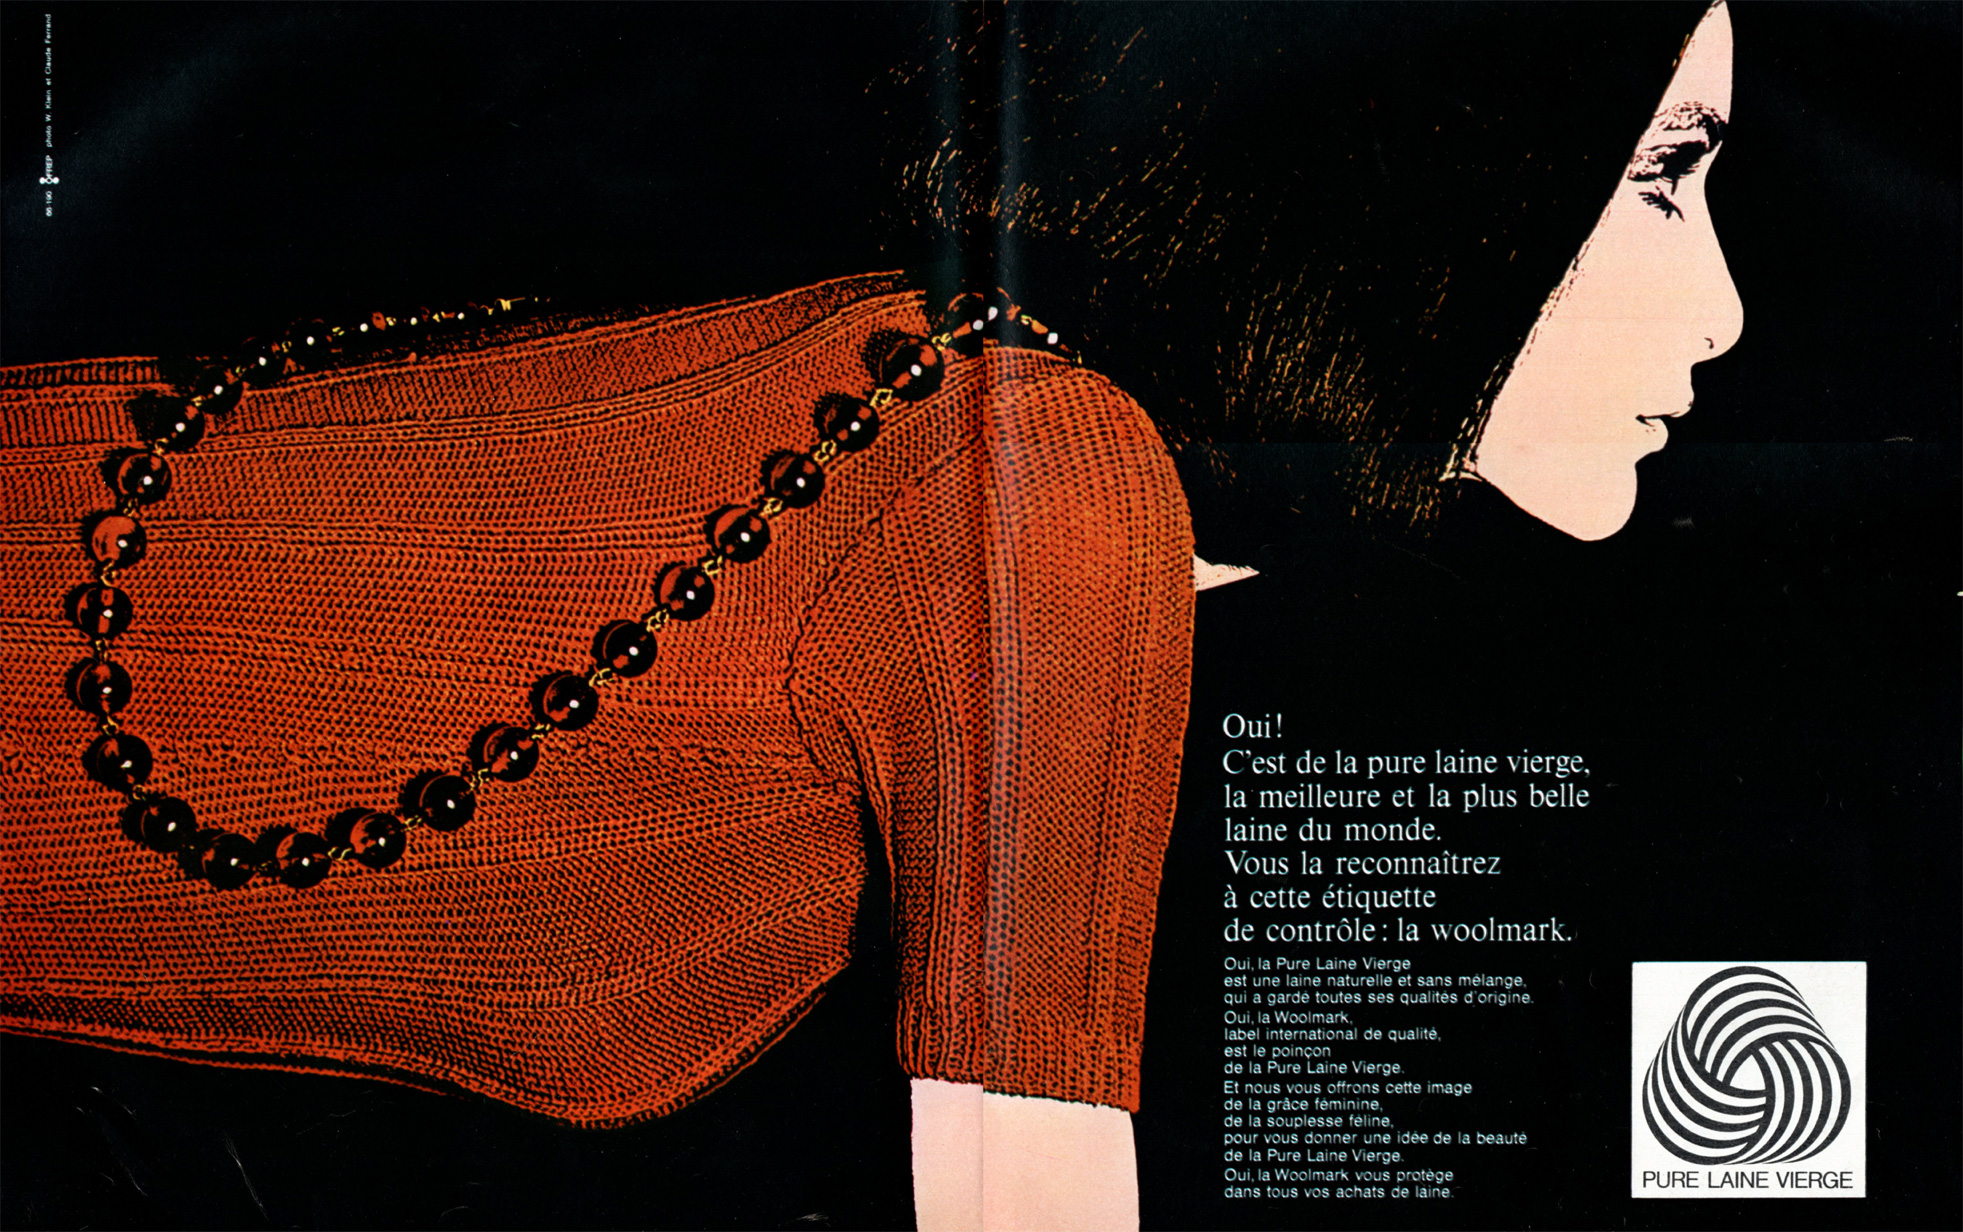 Woolmark advertising campaign in France, 1965